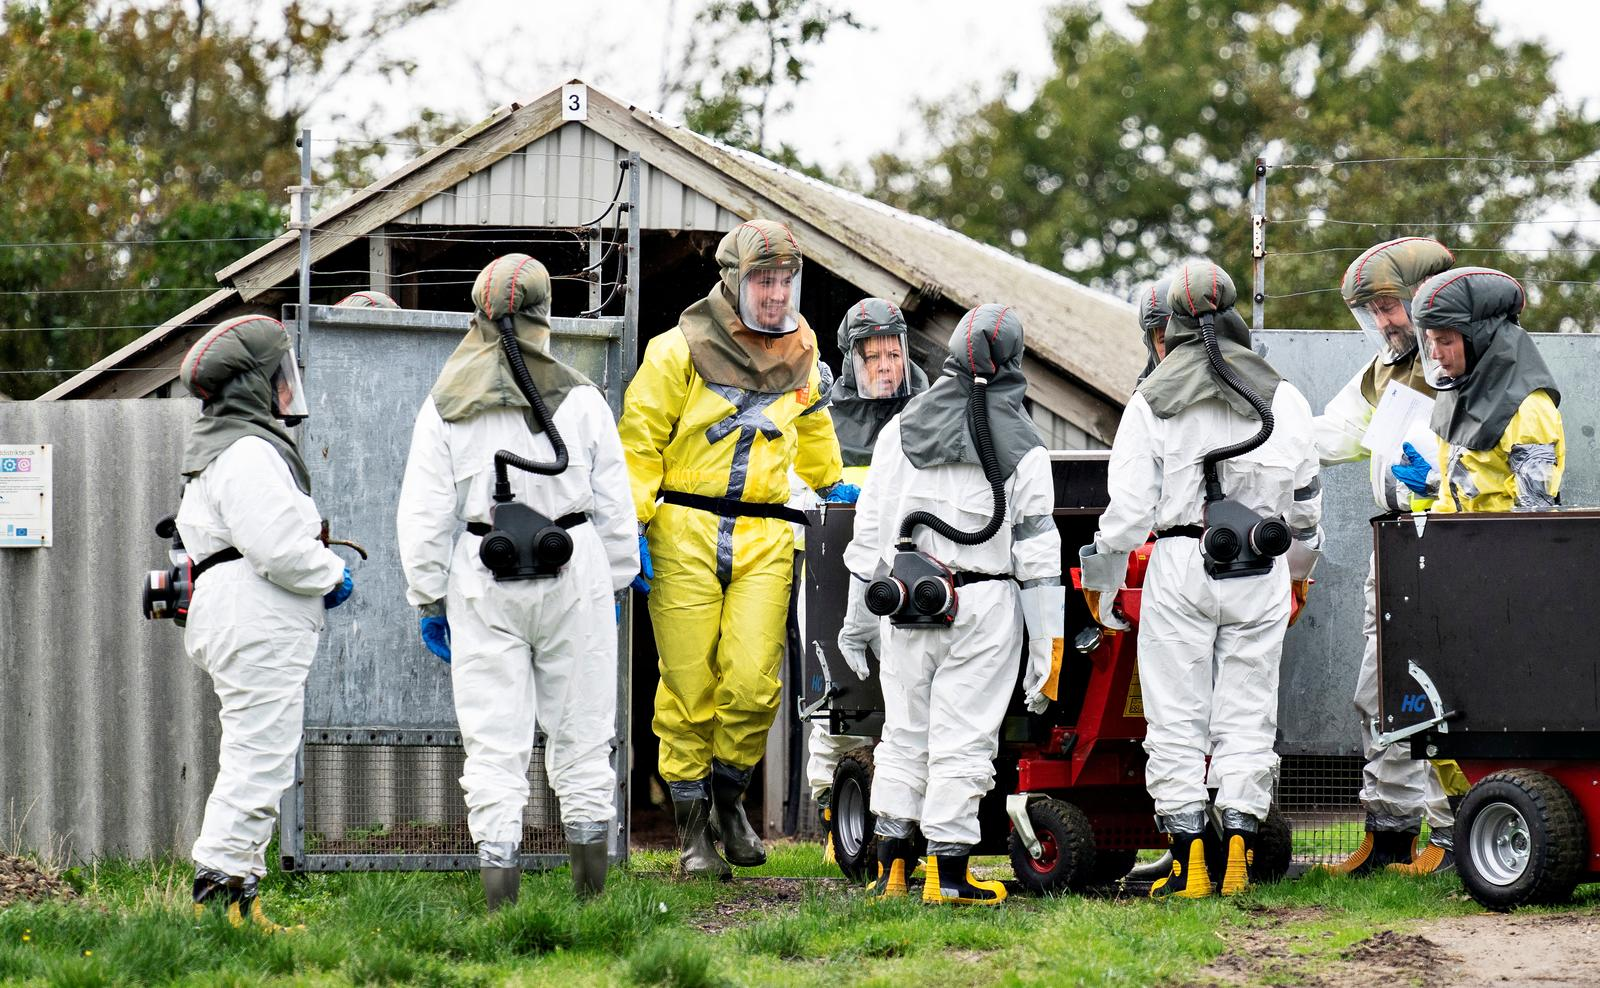 Employees from the Danish Veterinary and Food Administration and the Danish Emergency Management Agency in protective equipment are seen amid the coronavirus disease (COVID-19) outbreak at a mink farm in Gjoel, North Jutland, Denmark October 8, 2020. Photo: Ritzau Scanpix/Henning Bagger via Reuters